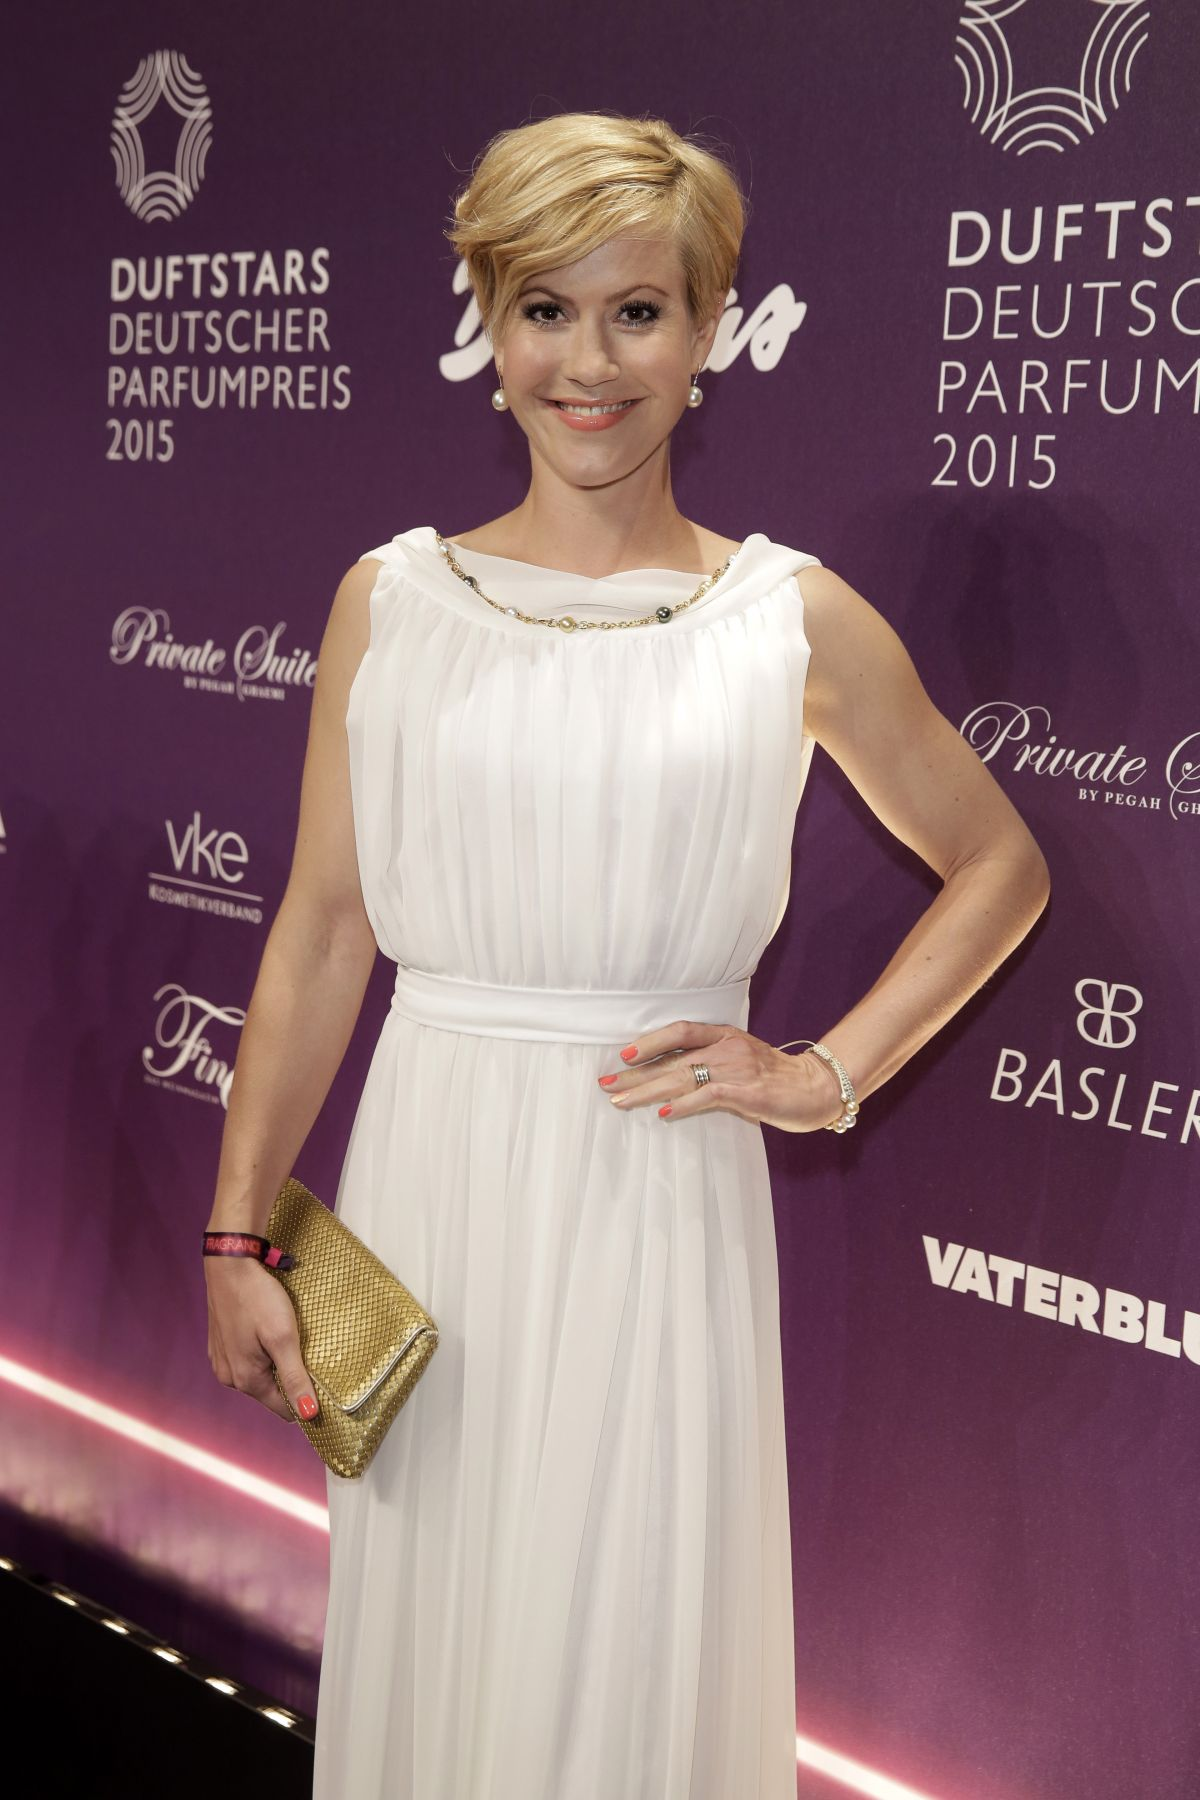 WOLKE HEGENBARTH at Duftstars Award in Berlin